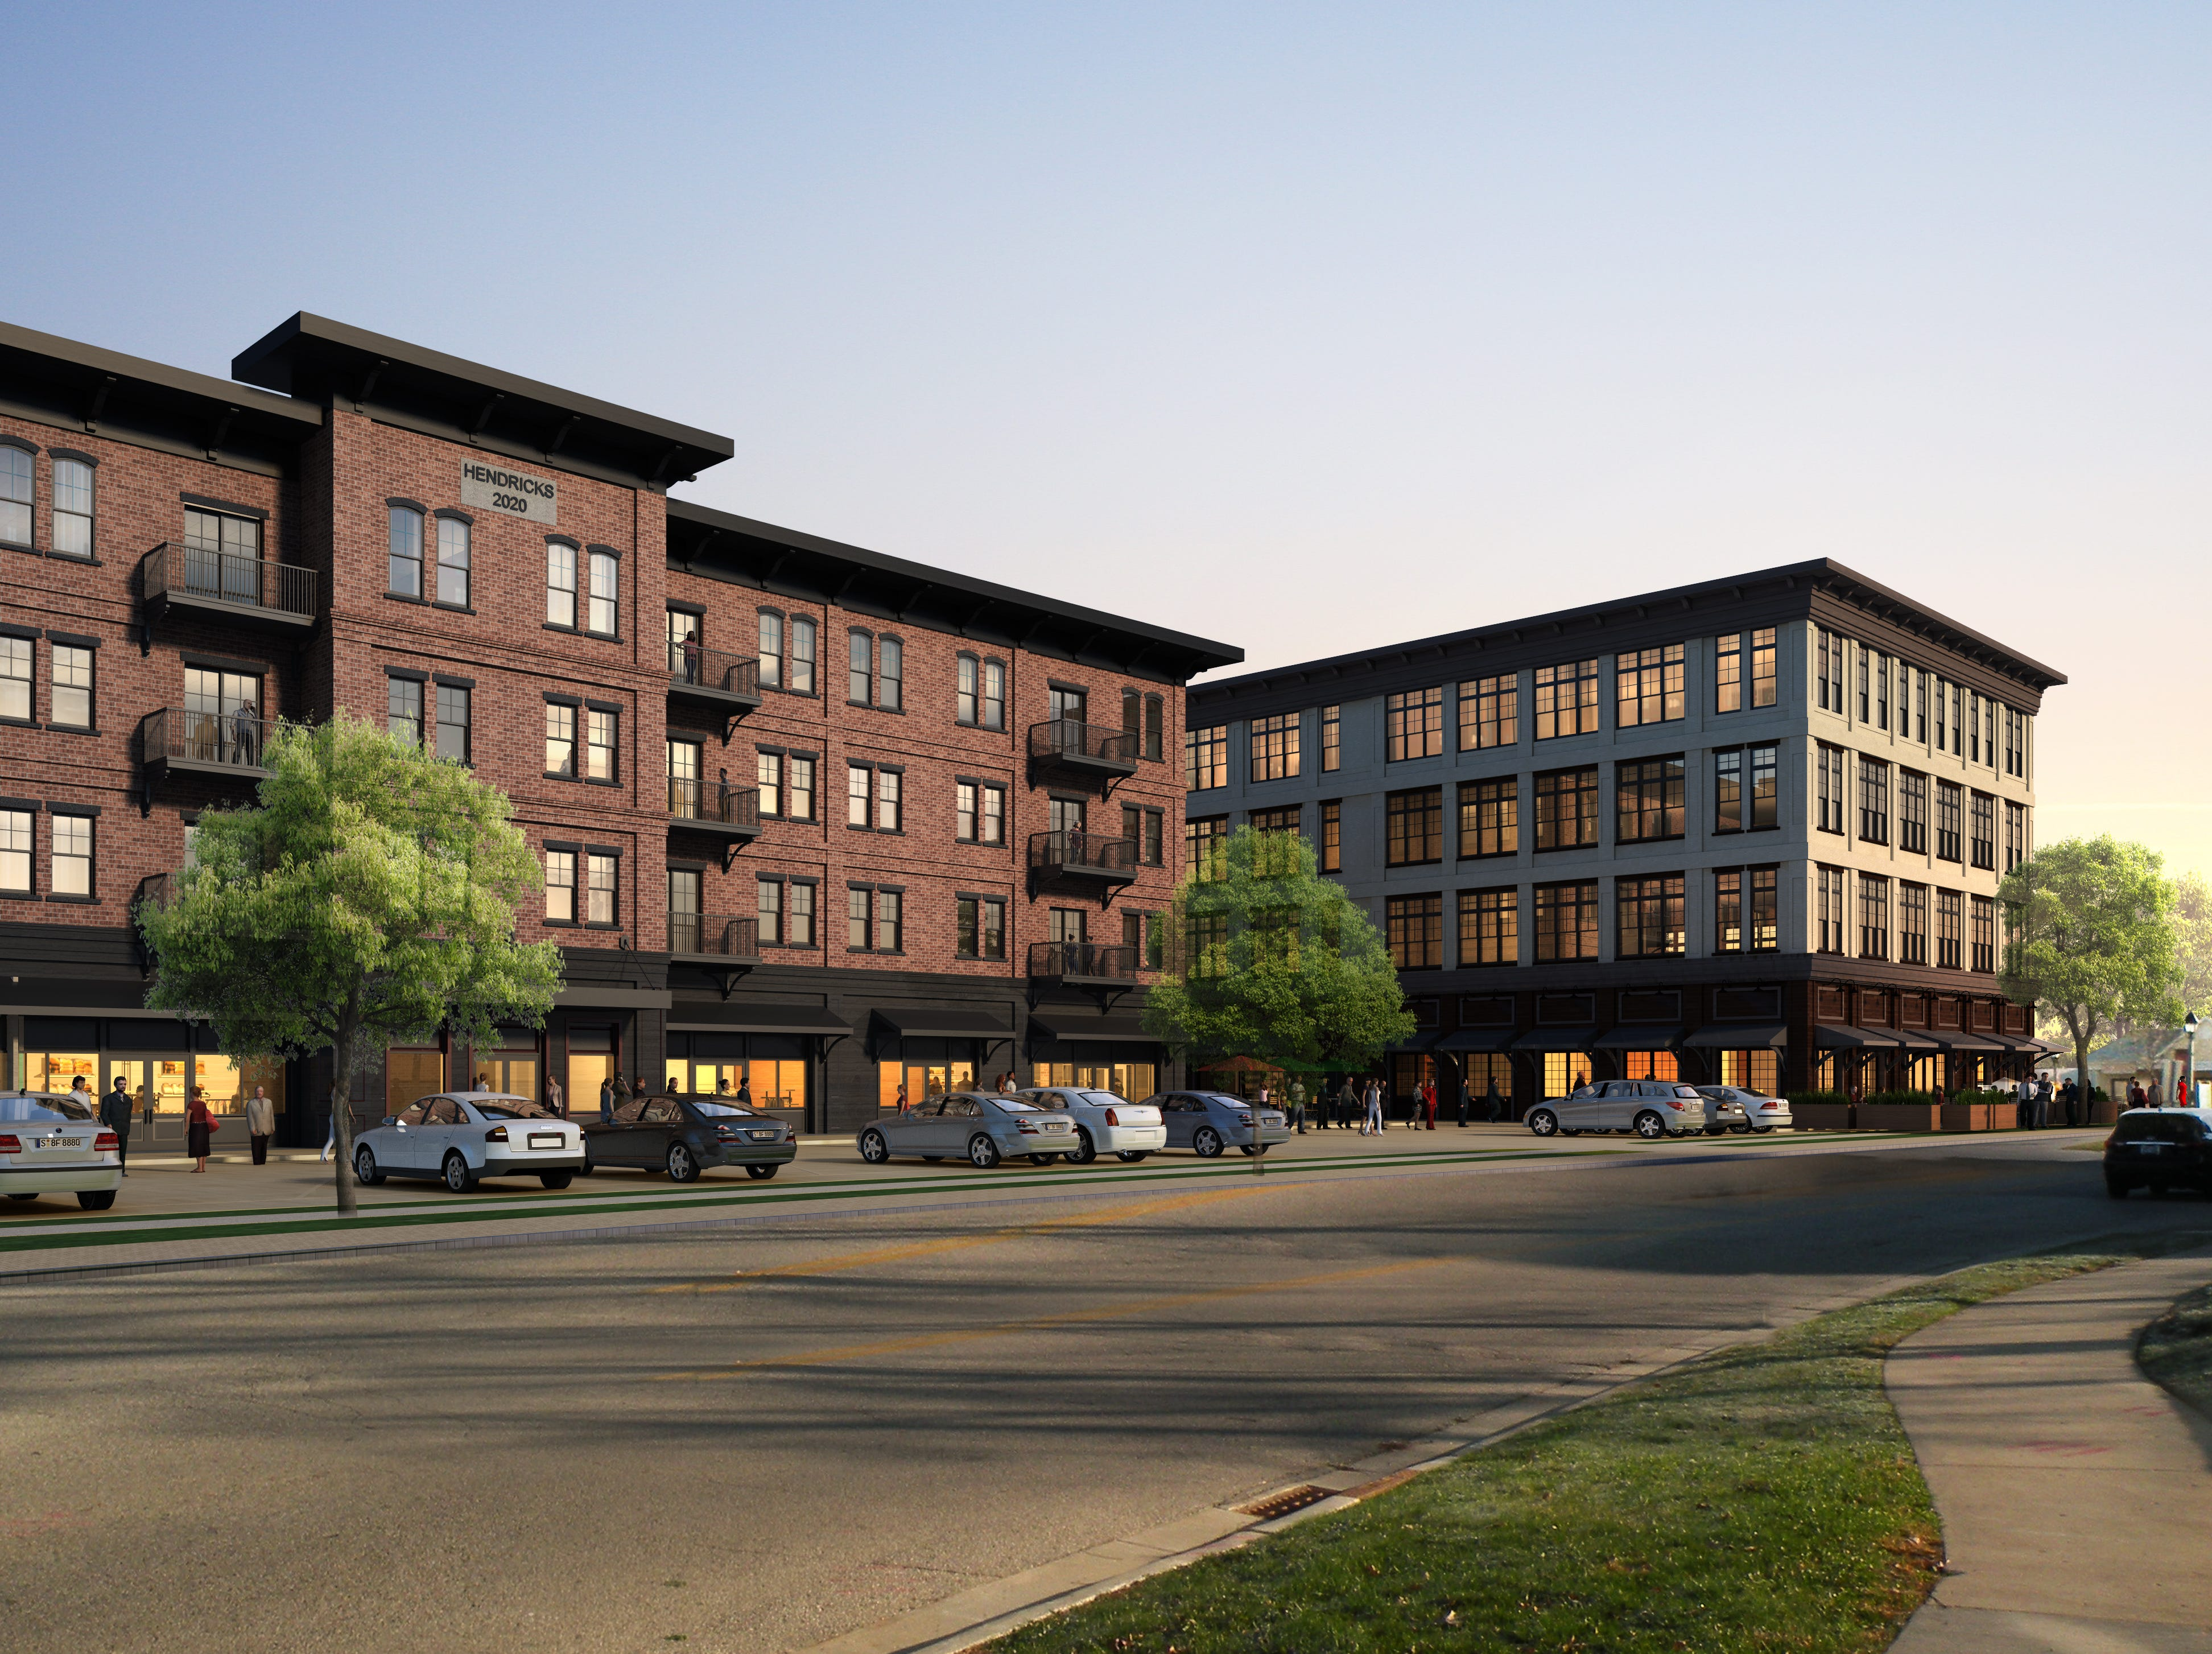 Hendricks Commercial Properties is proposing a two building development in the city of Delafield.